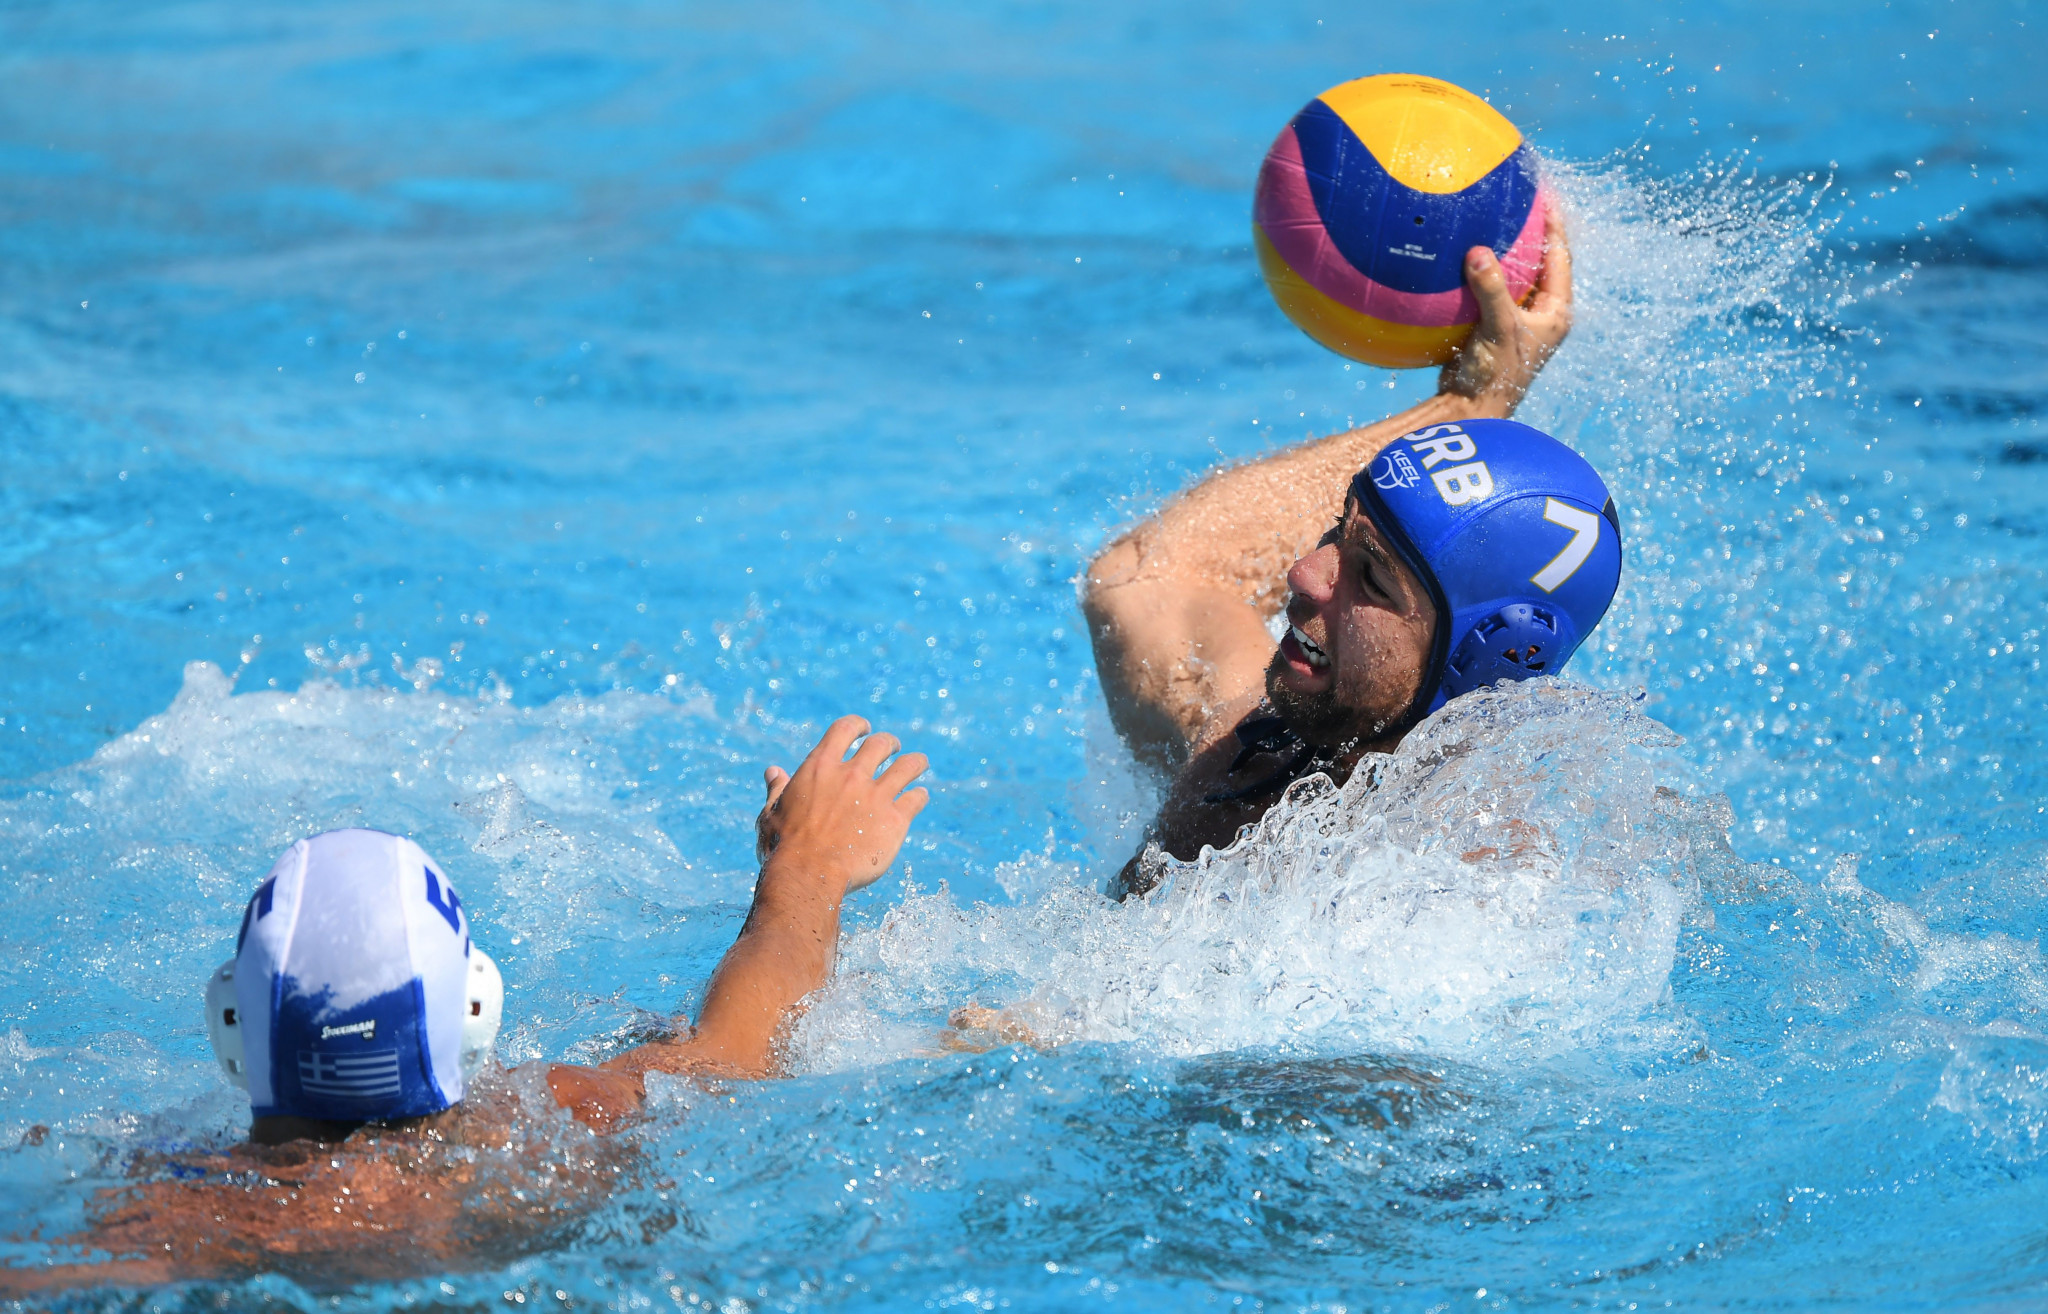 Heavyweights Serbia and Croatia draw at Men's Water Polo World Cup